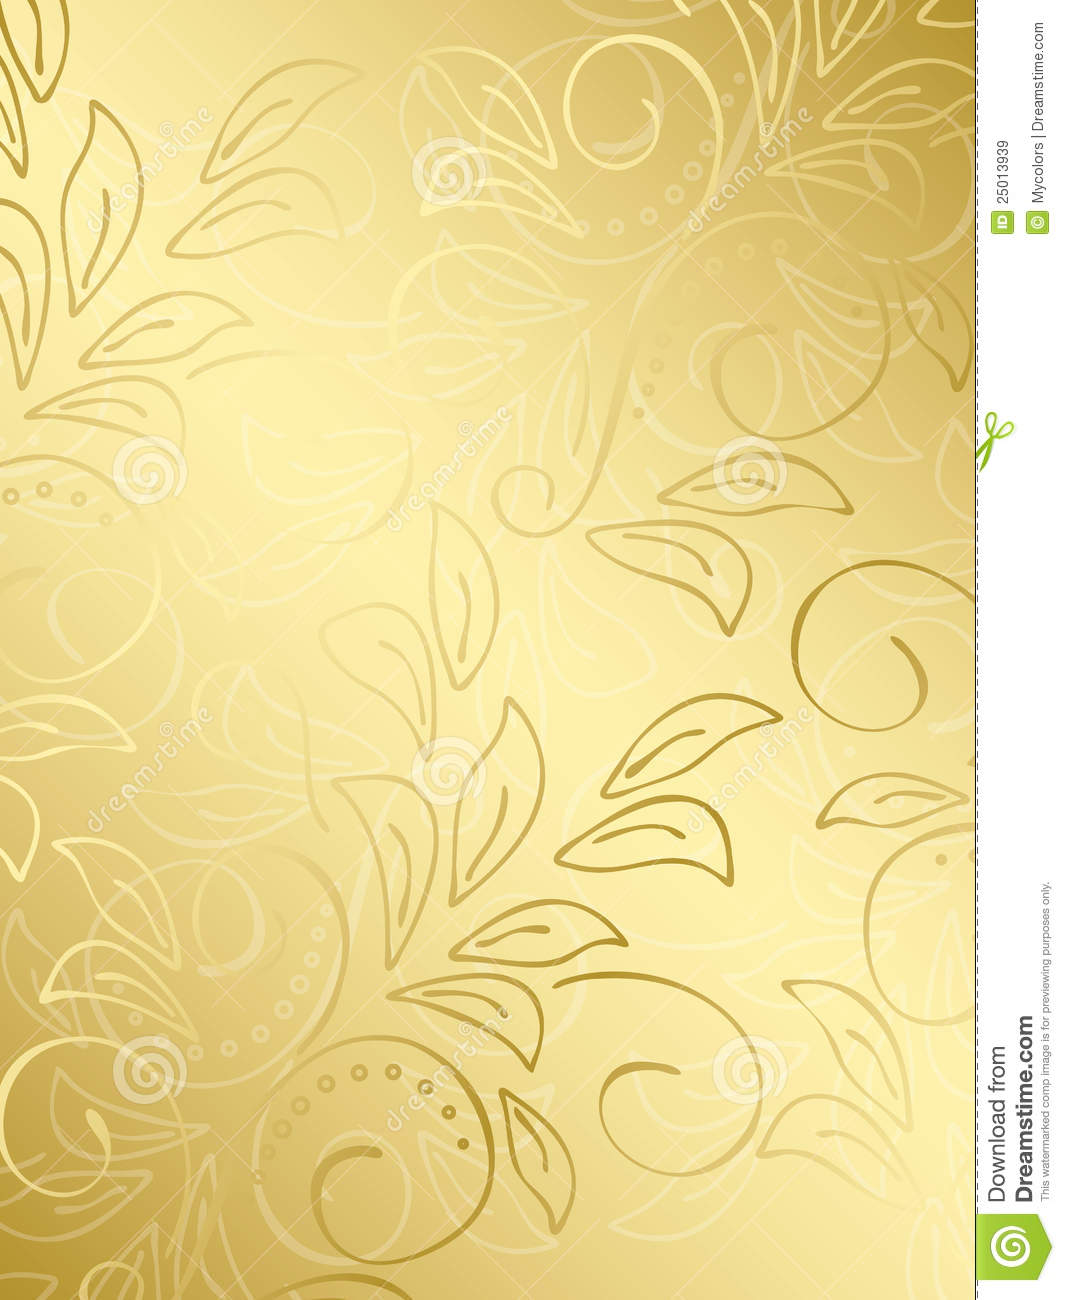 Golden Design Wallpaper : Golden gradient ? design playground